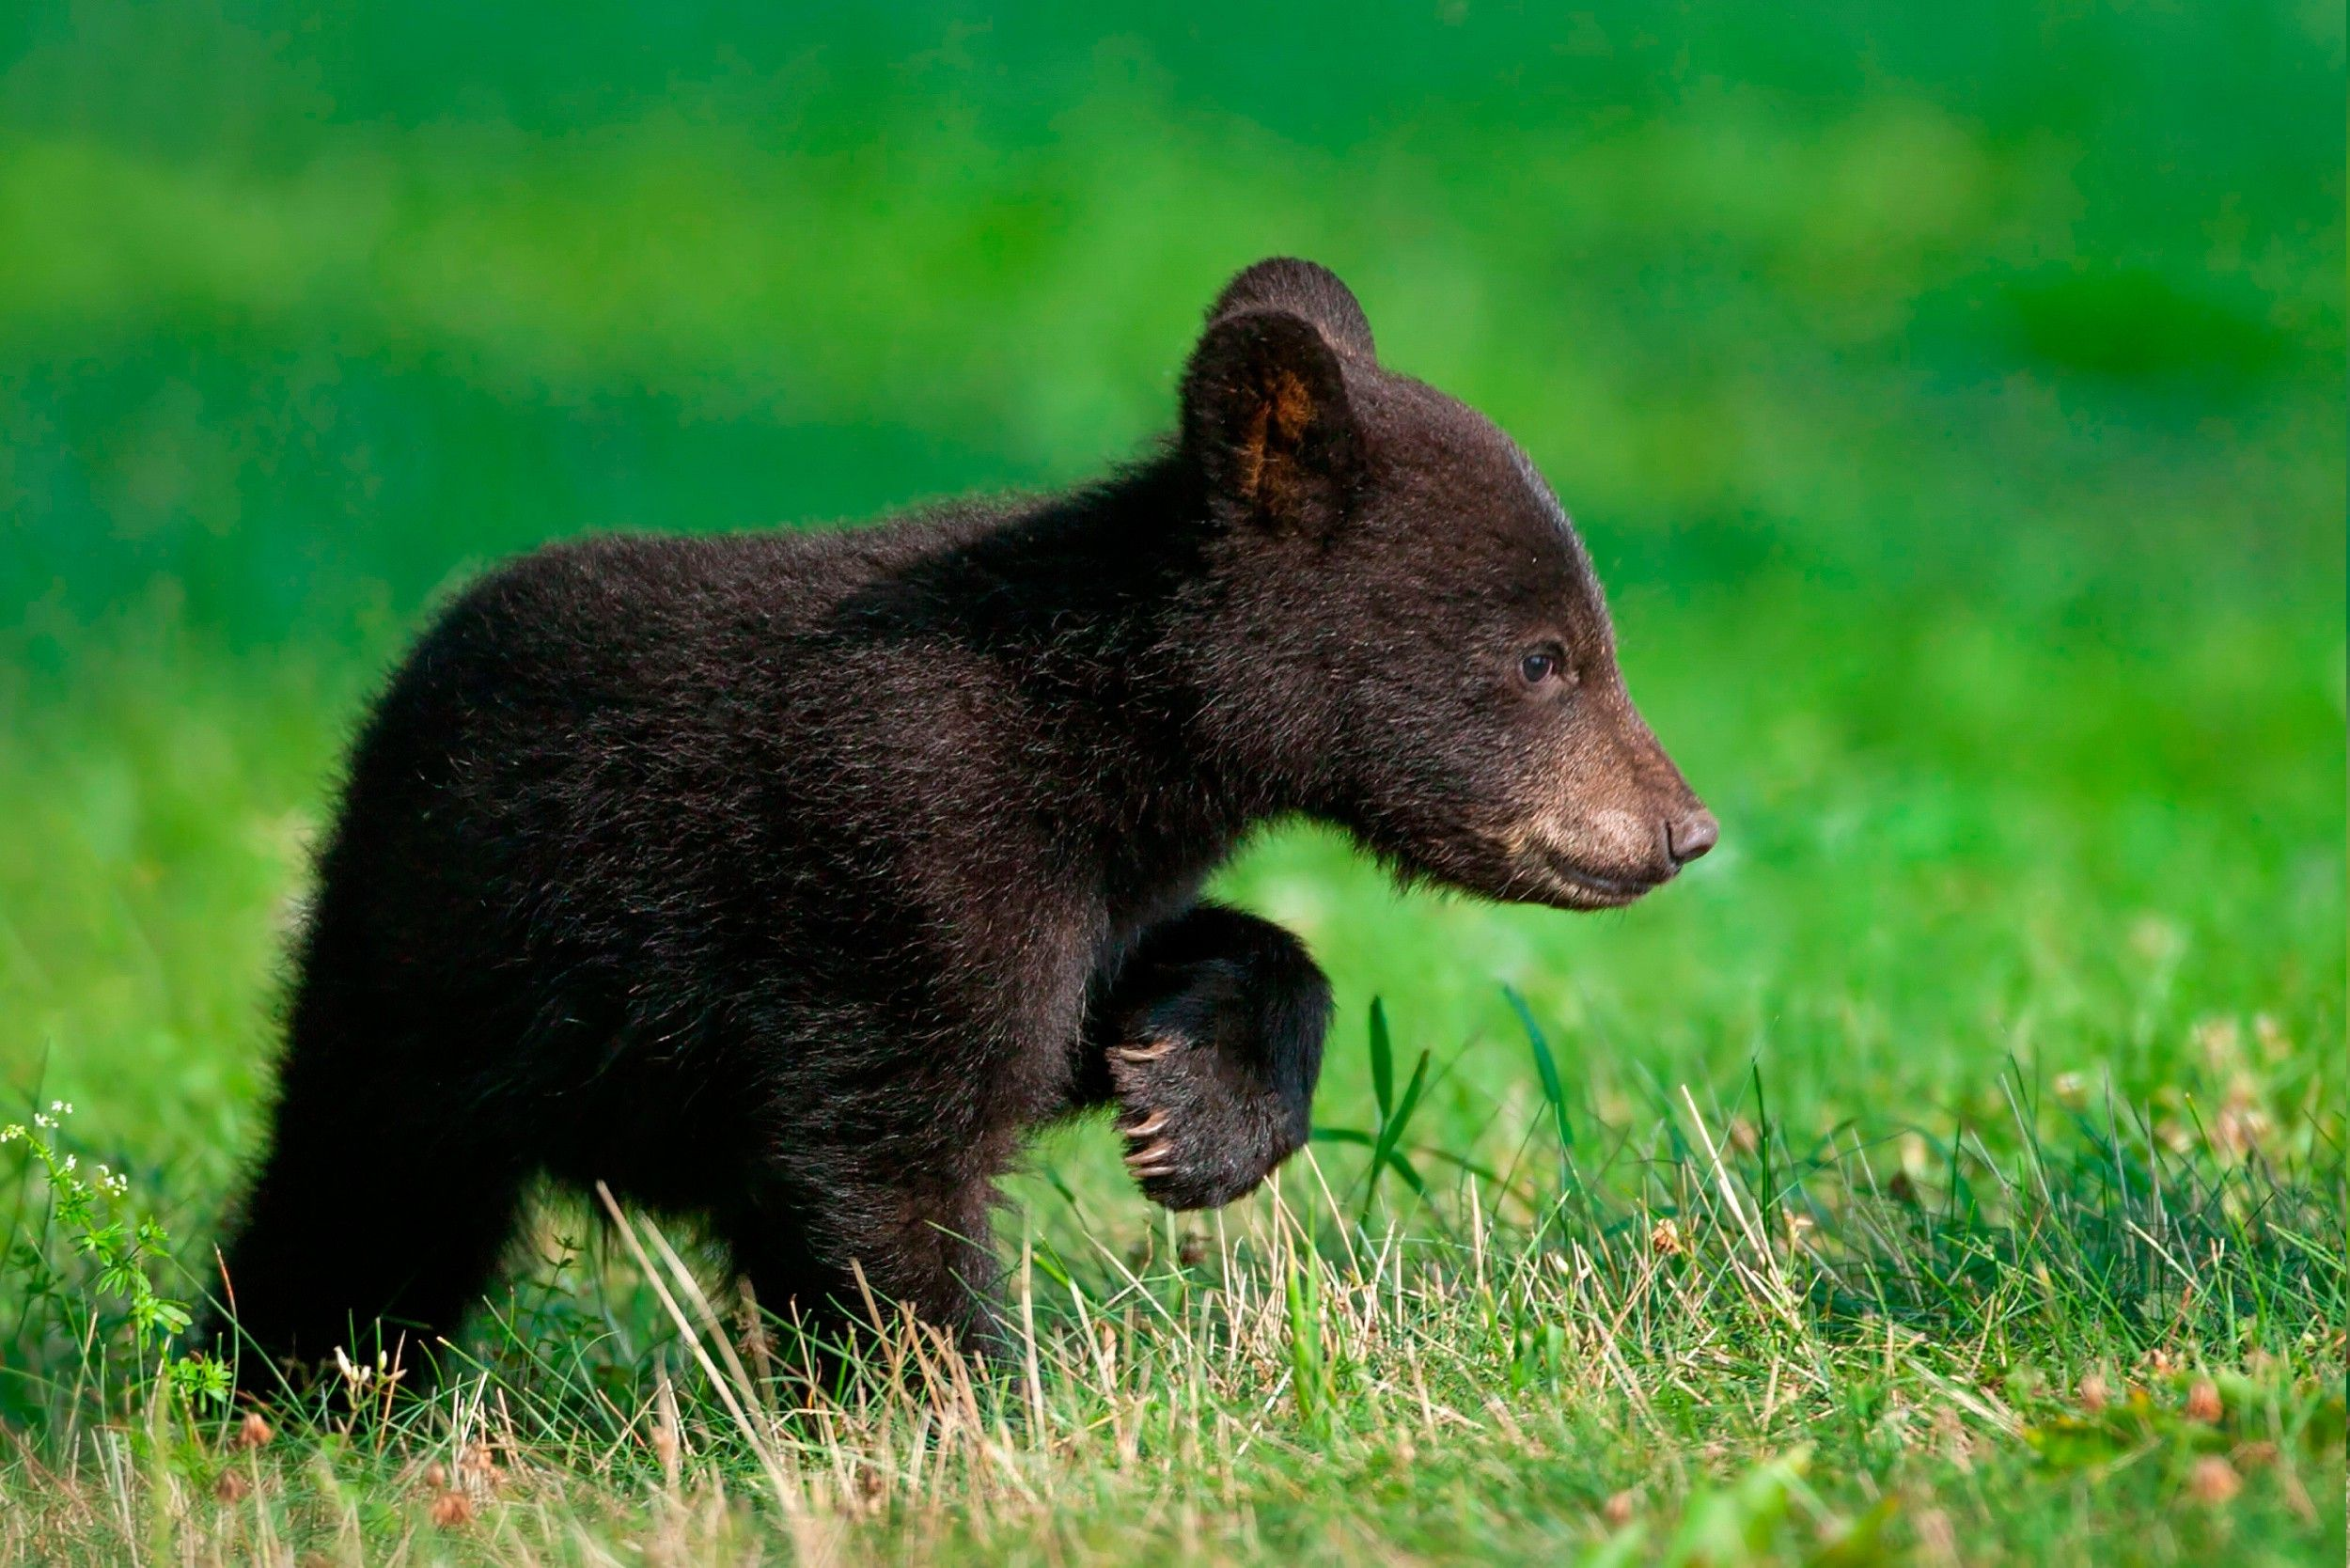 Download Hd Wallpapers Of 275970 Animals Bears Free Download High Quality And Widescreen Resolutions Desktop Background Image Kitten Images Animals Bear Cubs